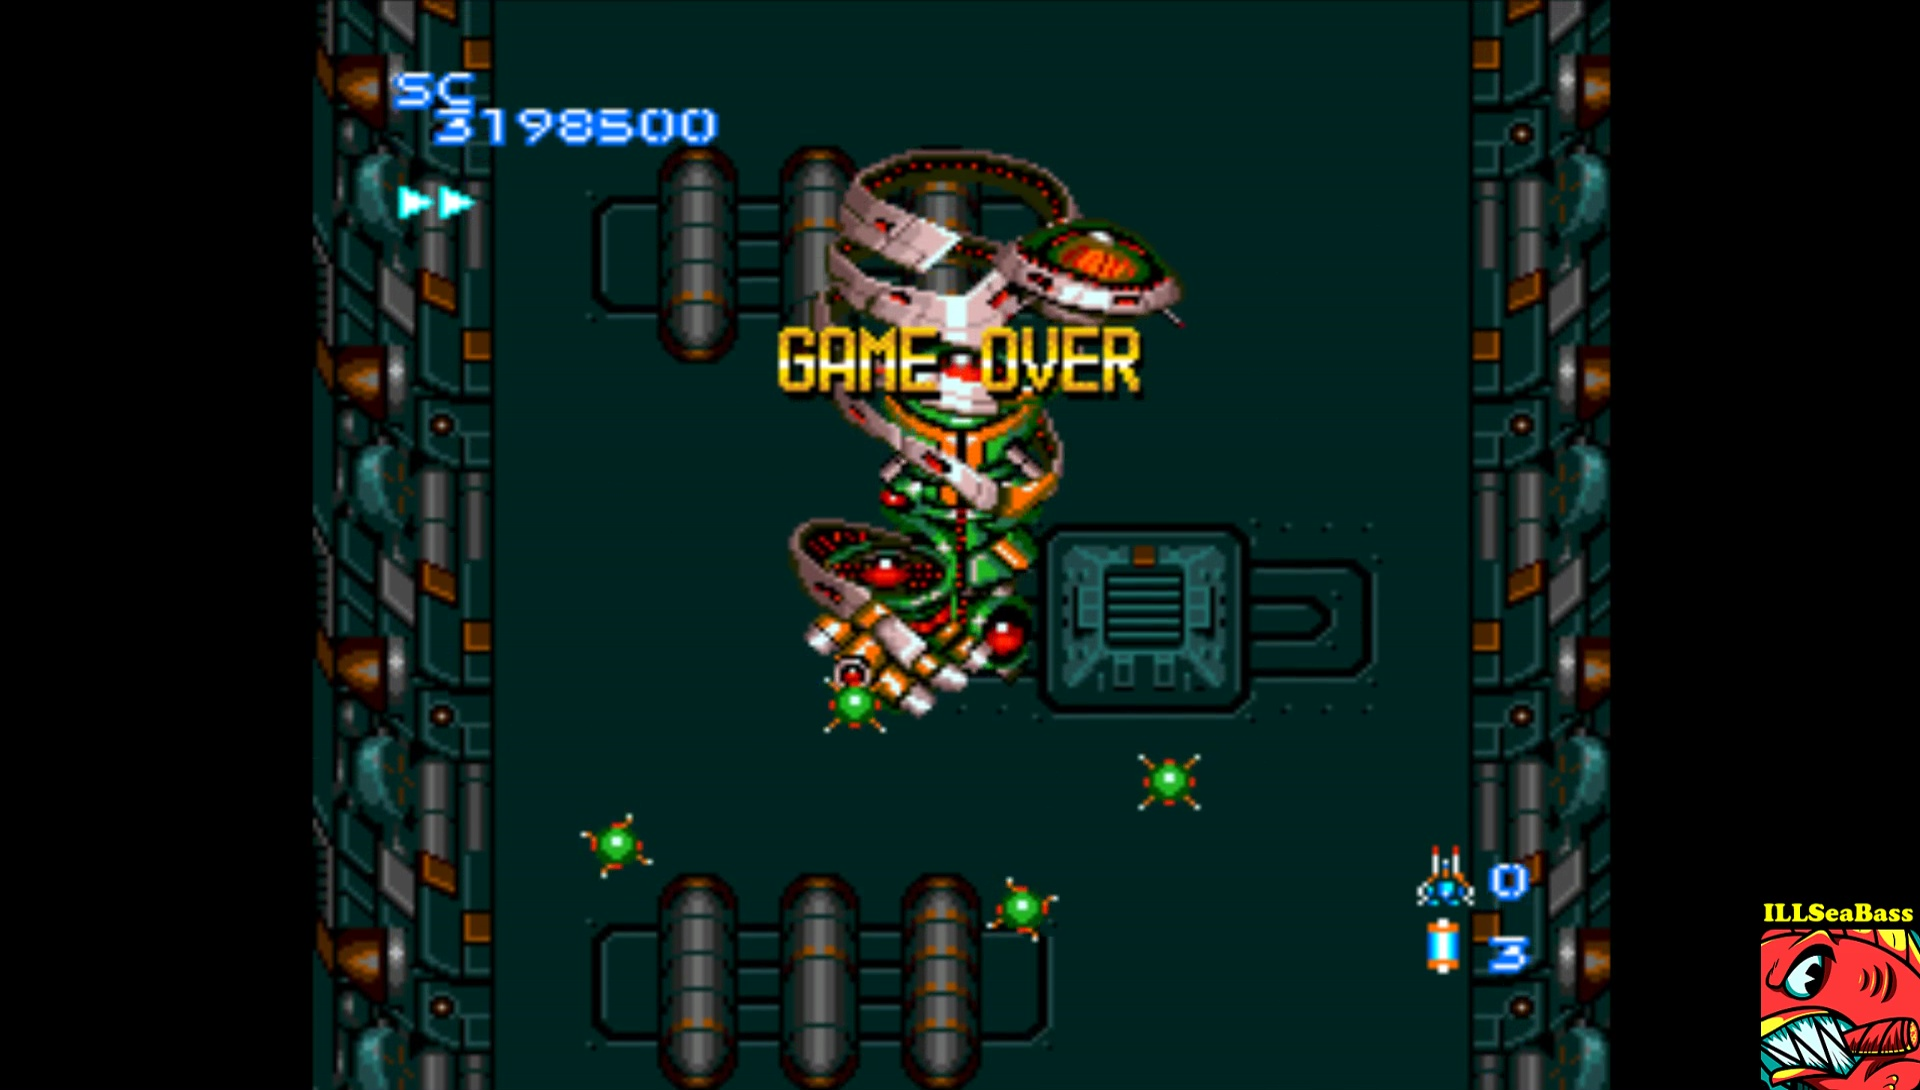 ILLSeaBass: Blazing Lazers (TurboGrafx-16/PC Engine Emulated) 3,198,500 points on 2017-03-20 19:23:59